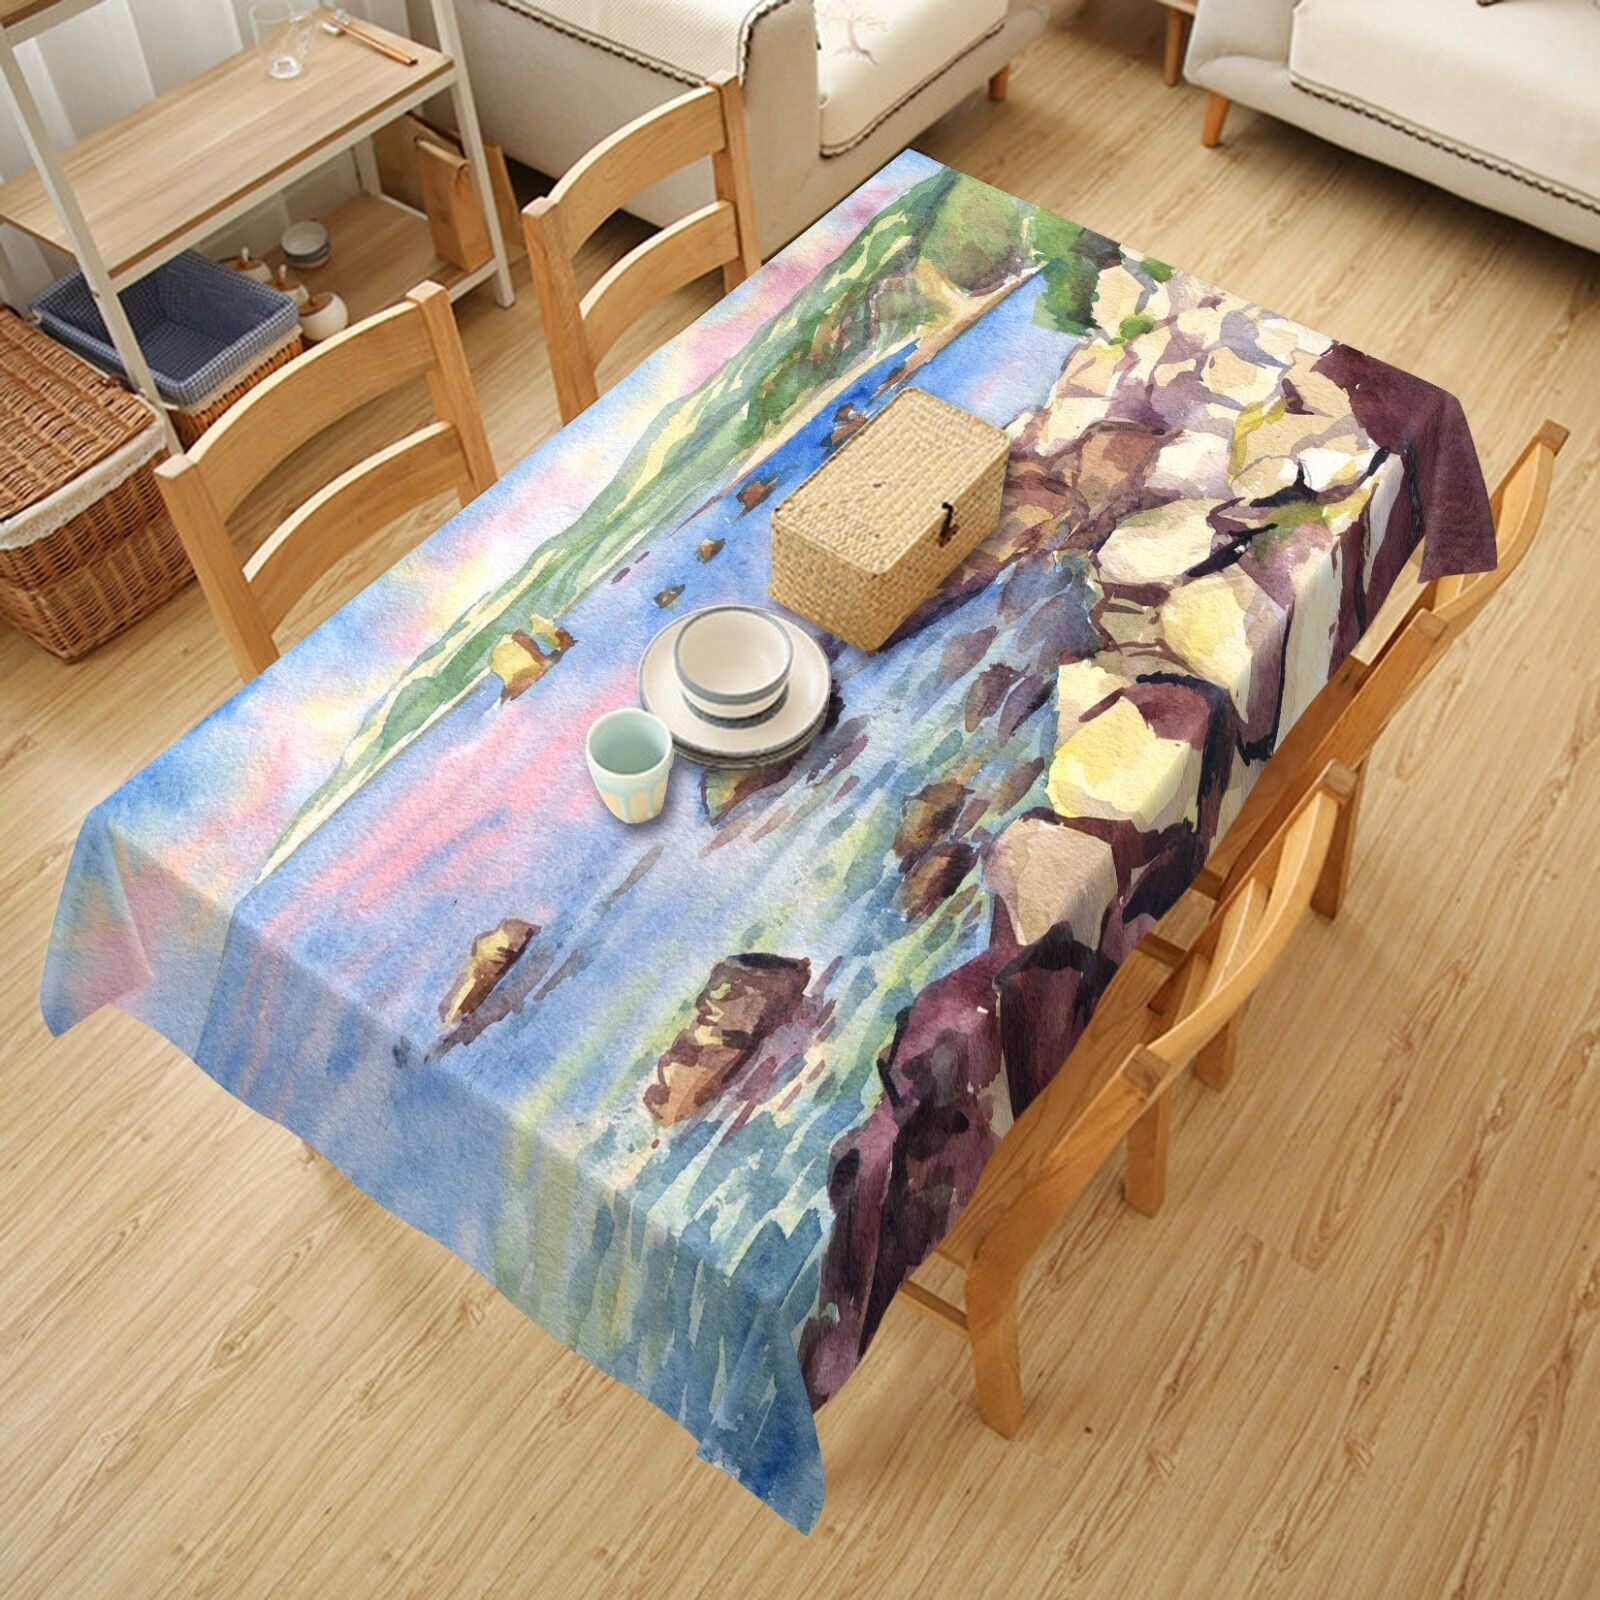 3D River sky97 Tablecloth Table Cover Cloth Birthday Party Event AJ WALLPAPER UK